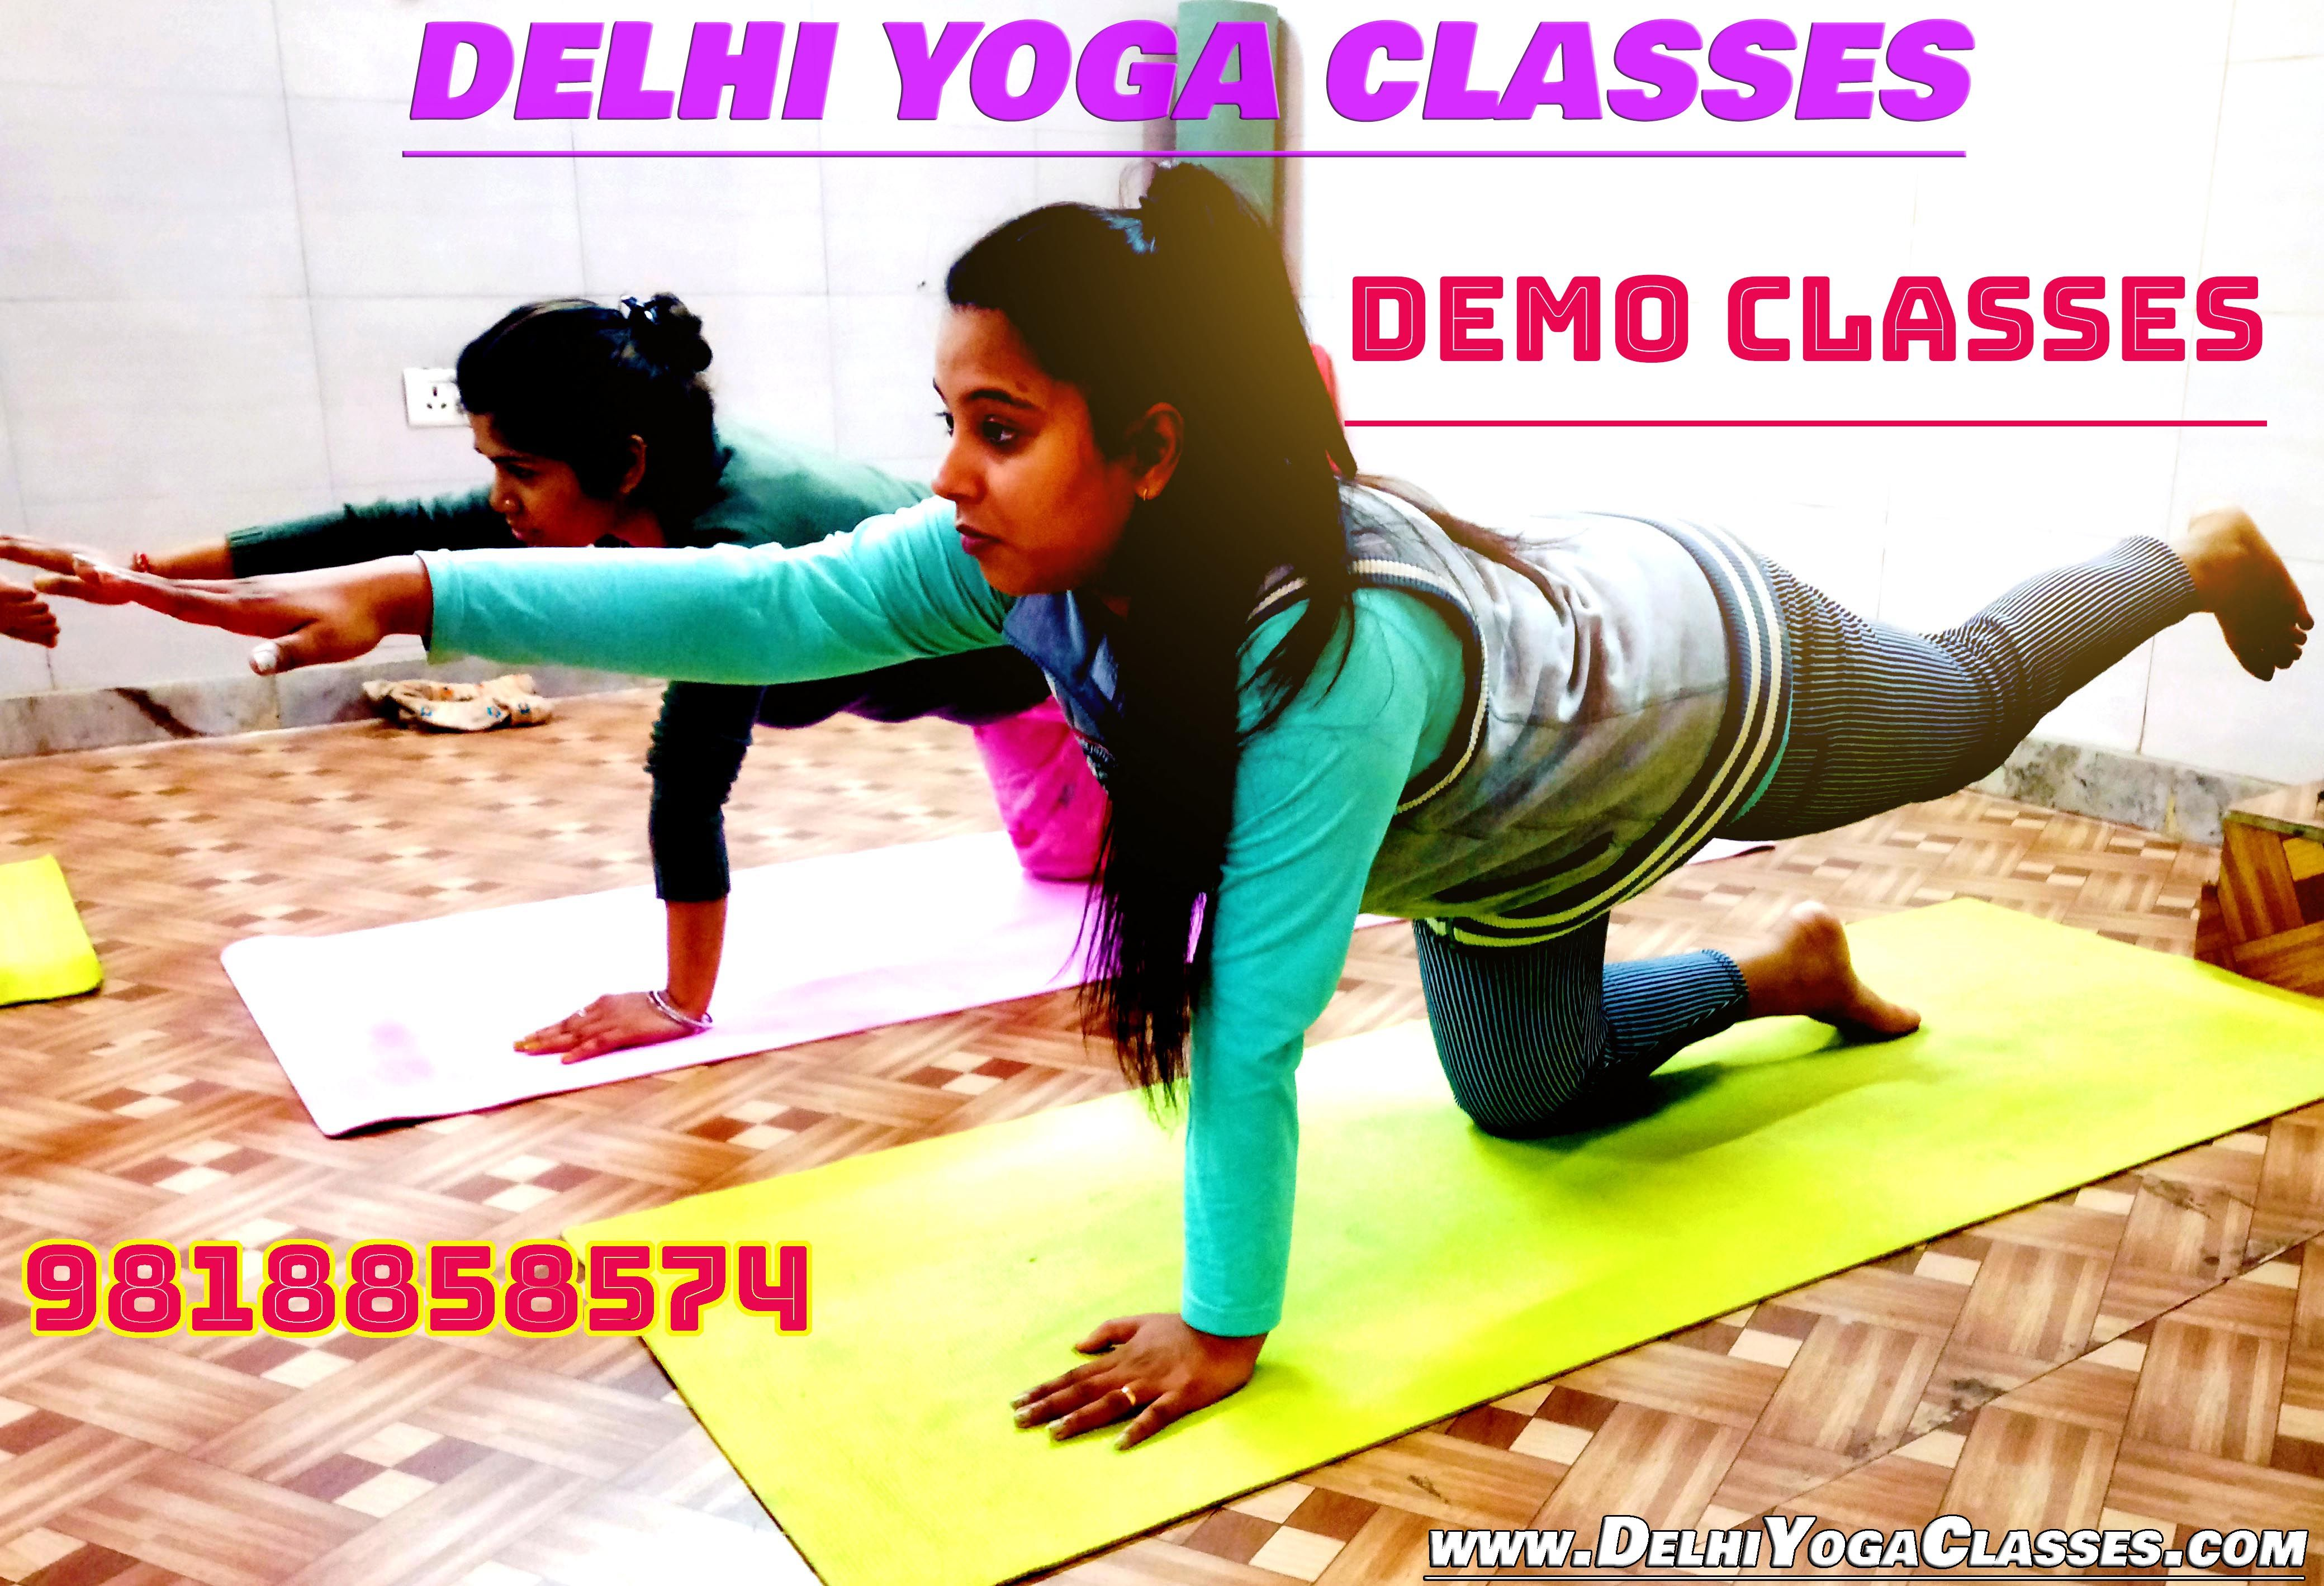 Demo yoga classes for all dyc 9818858574 in 2020